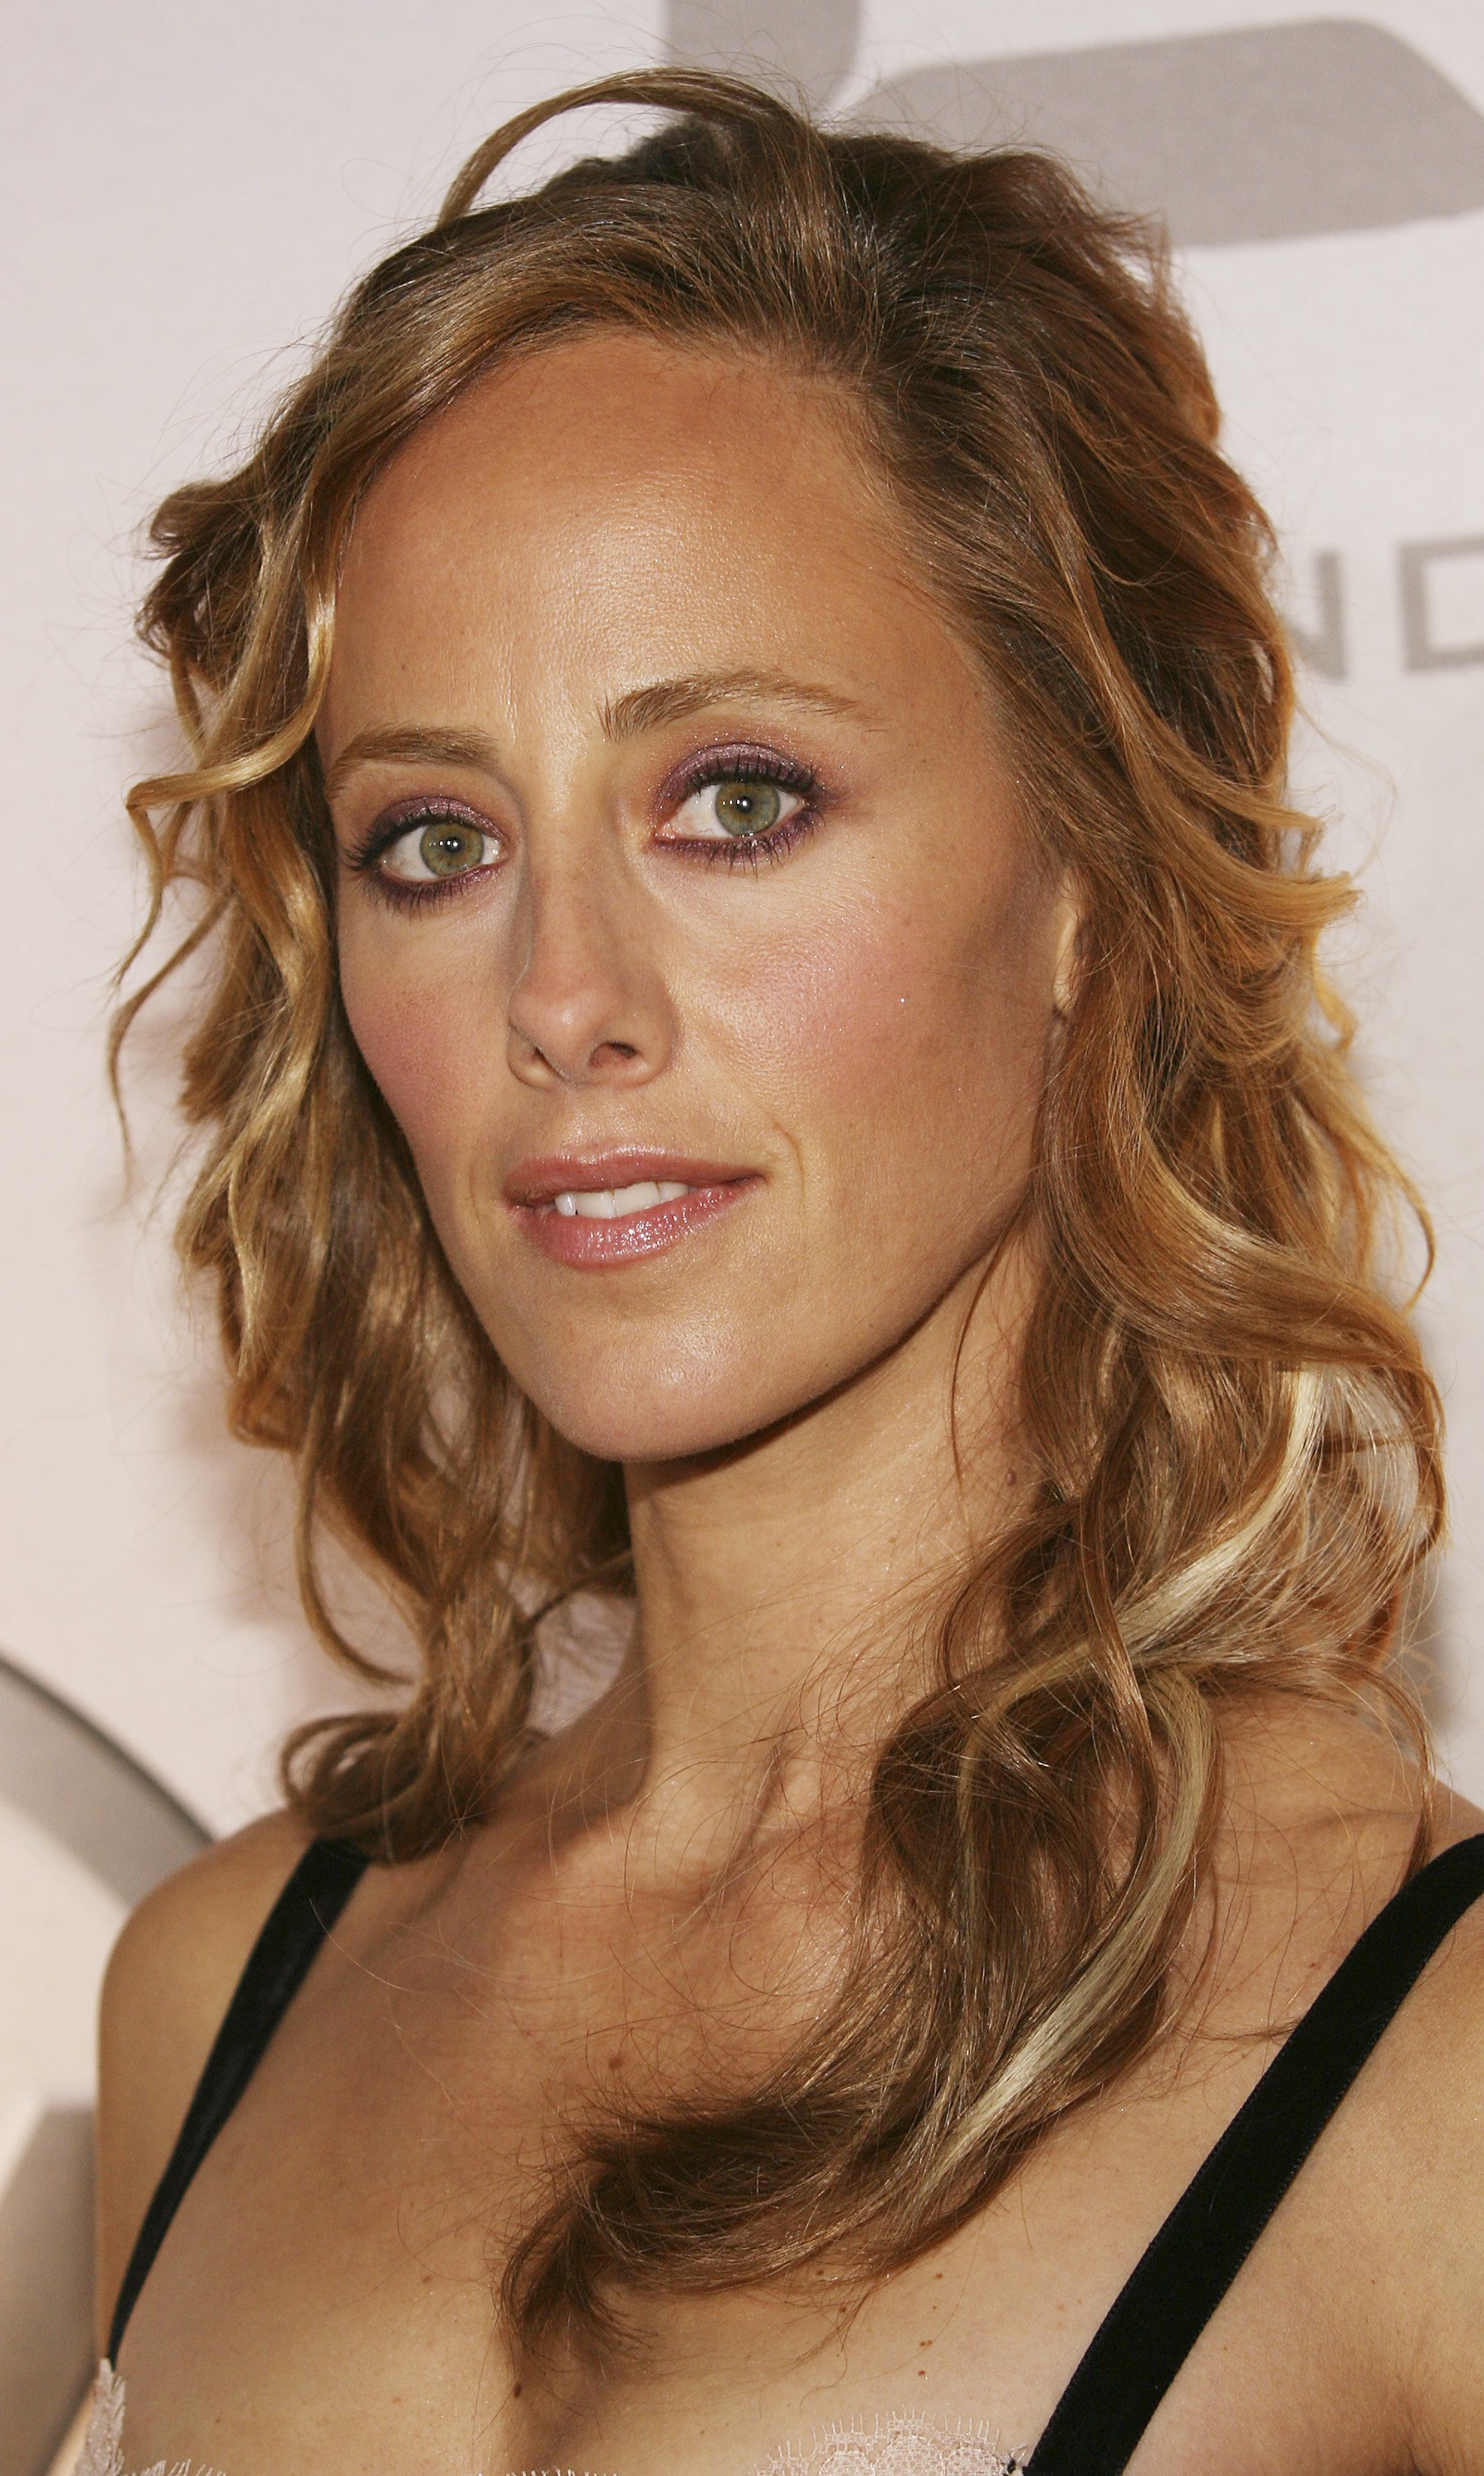 kim raver leaving grey's anatomykim raver husband, kim raver leaving grey's, kim raver instagram, kim raver filmography, kim raver, kim raver imdb, kim raver net worth, kim raver wiki, kim raver bones, kim raver height, kim raver movies, kim raver 2015, kim raver wikipedia, kim raver tumblr, kim raver grey anatomy, kim raver nose, kim raver family, kim raver leaving grey's anatomy, kim raver twitter